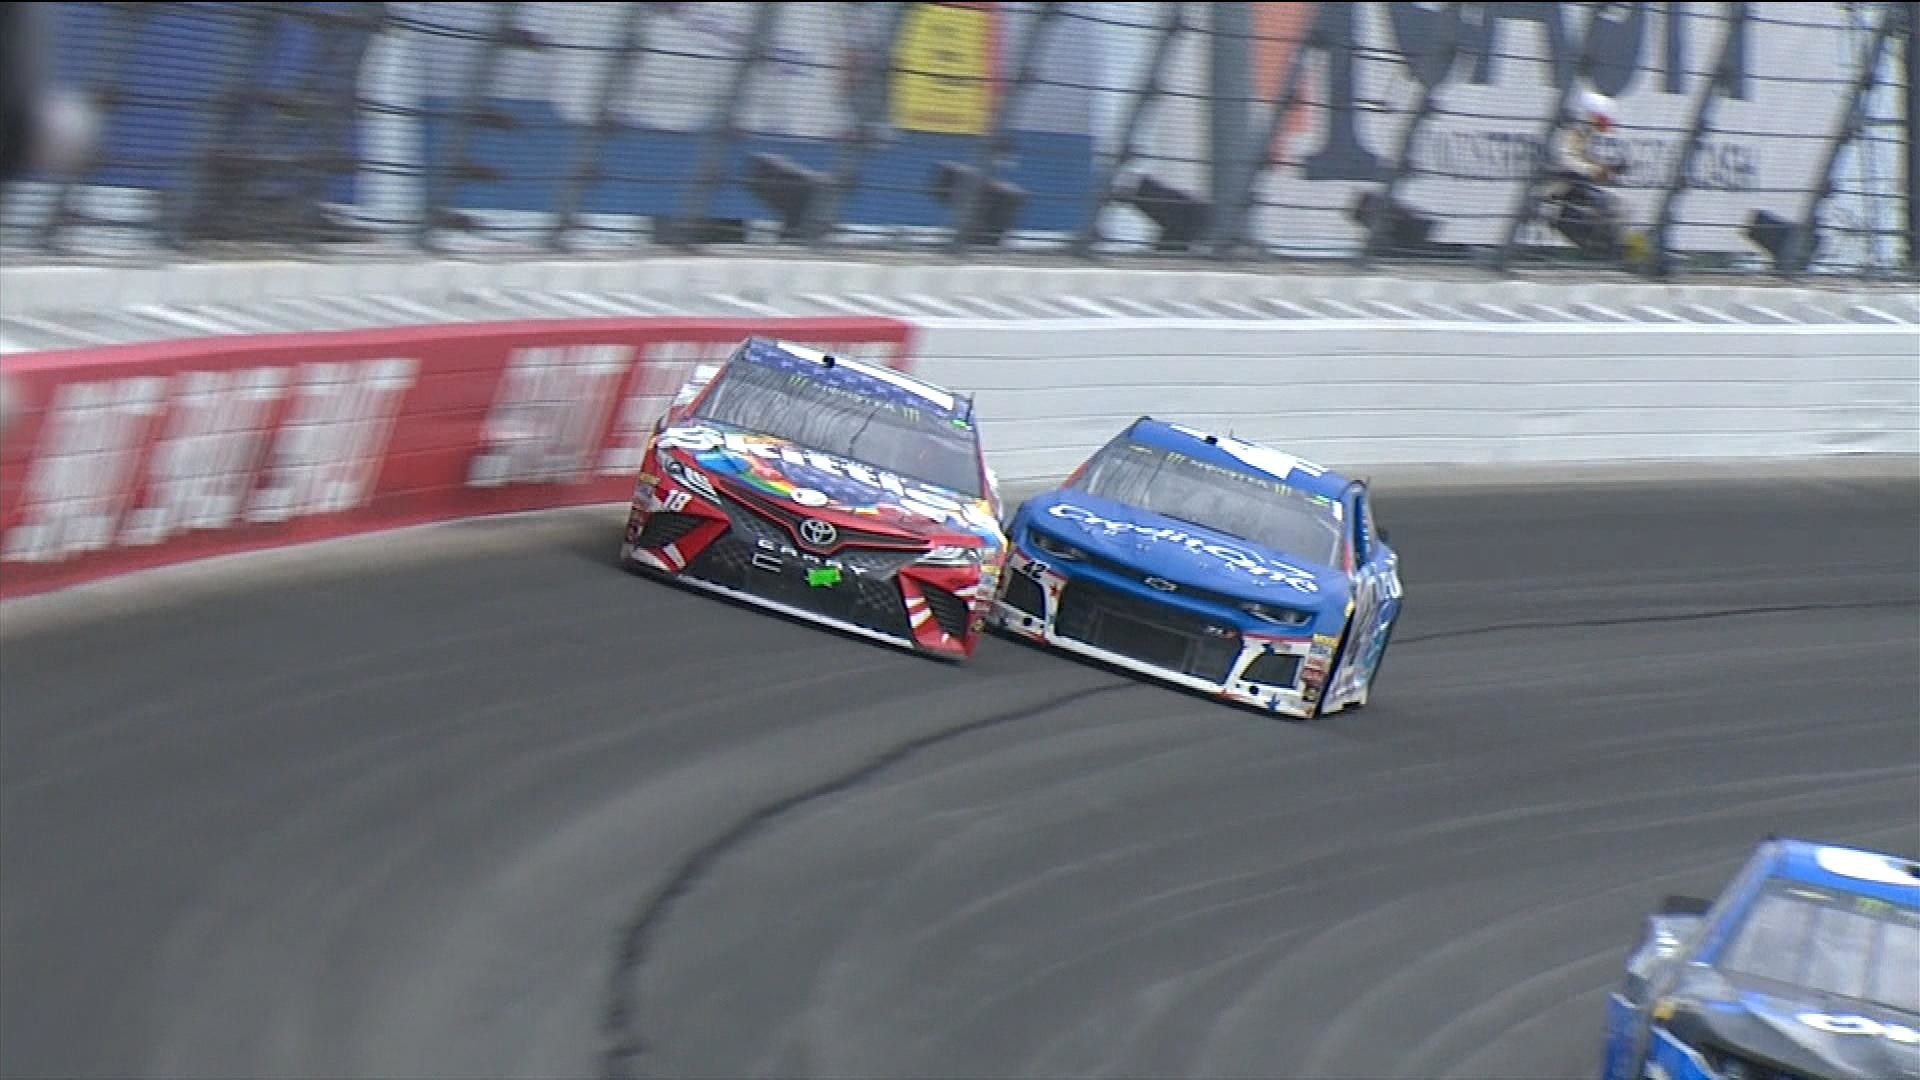 Kyle Busch Larsons NASCAR Finish For The Ages At Chicagoland